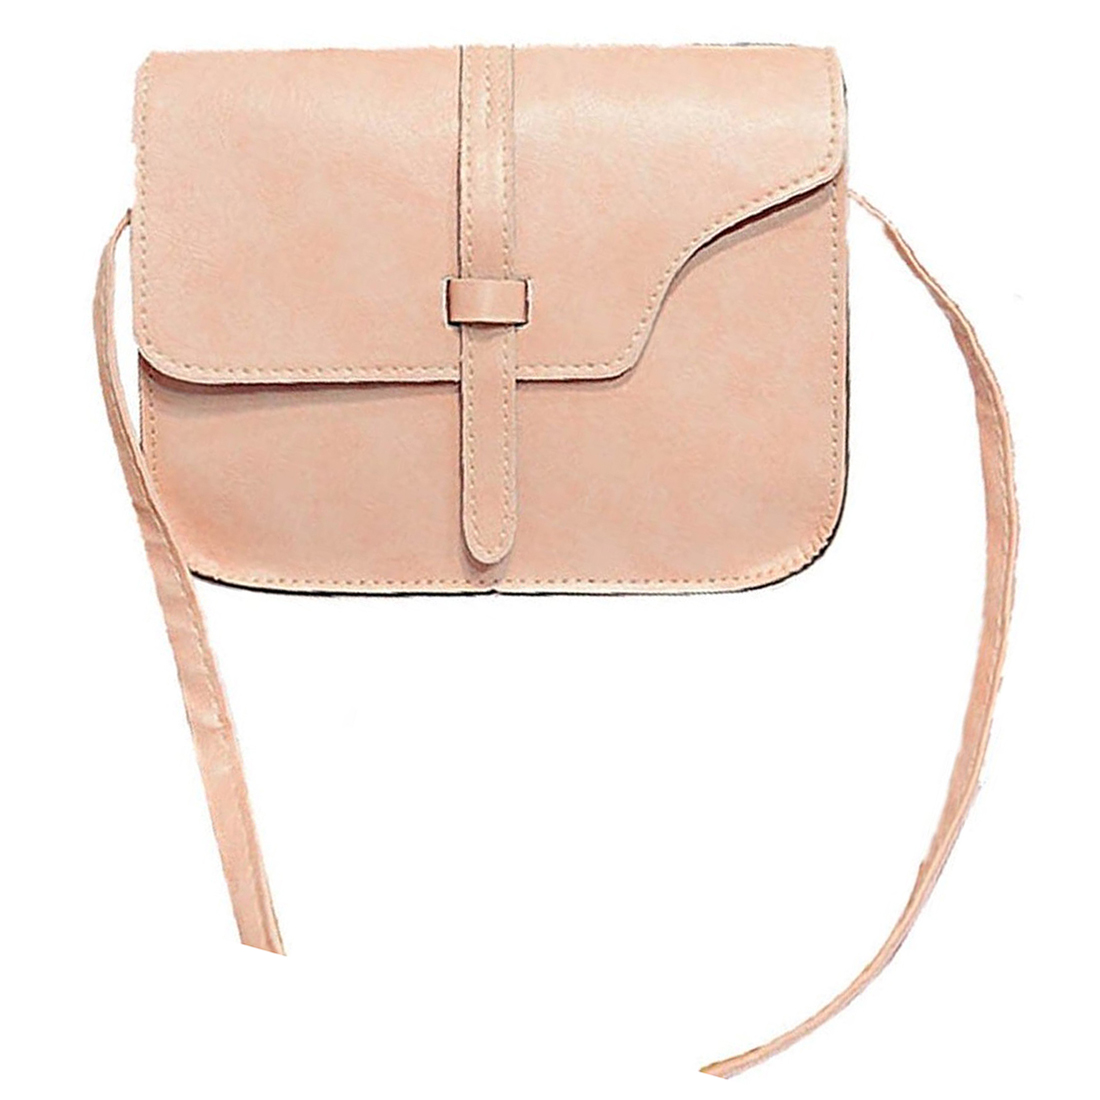 Fashion and New Women Girl Shoulder Bag Briefcase Faux Leather Crossbody Tote Bag pink